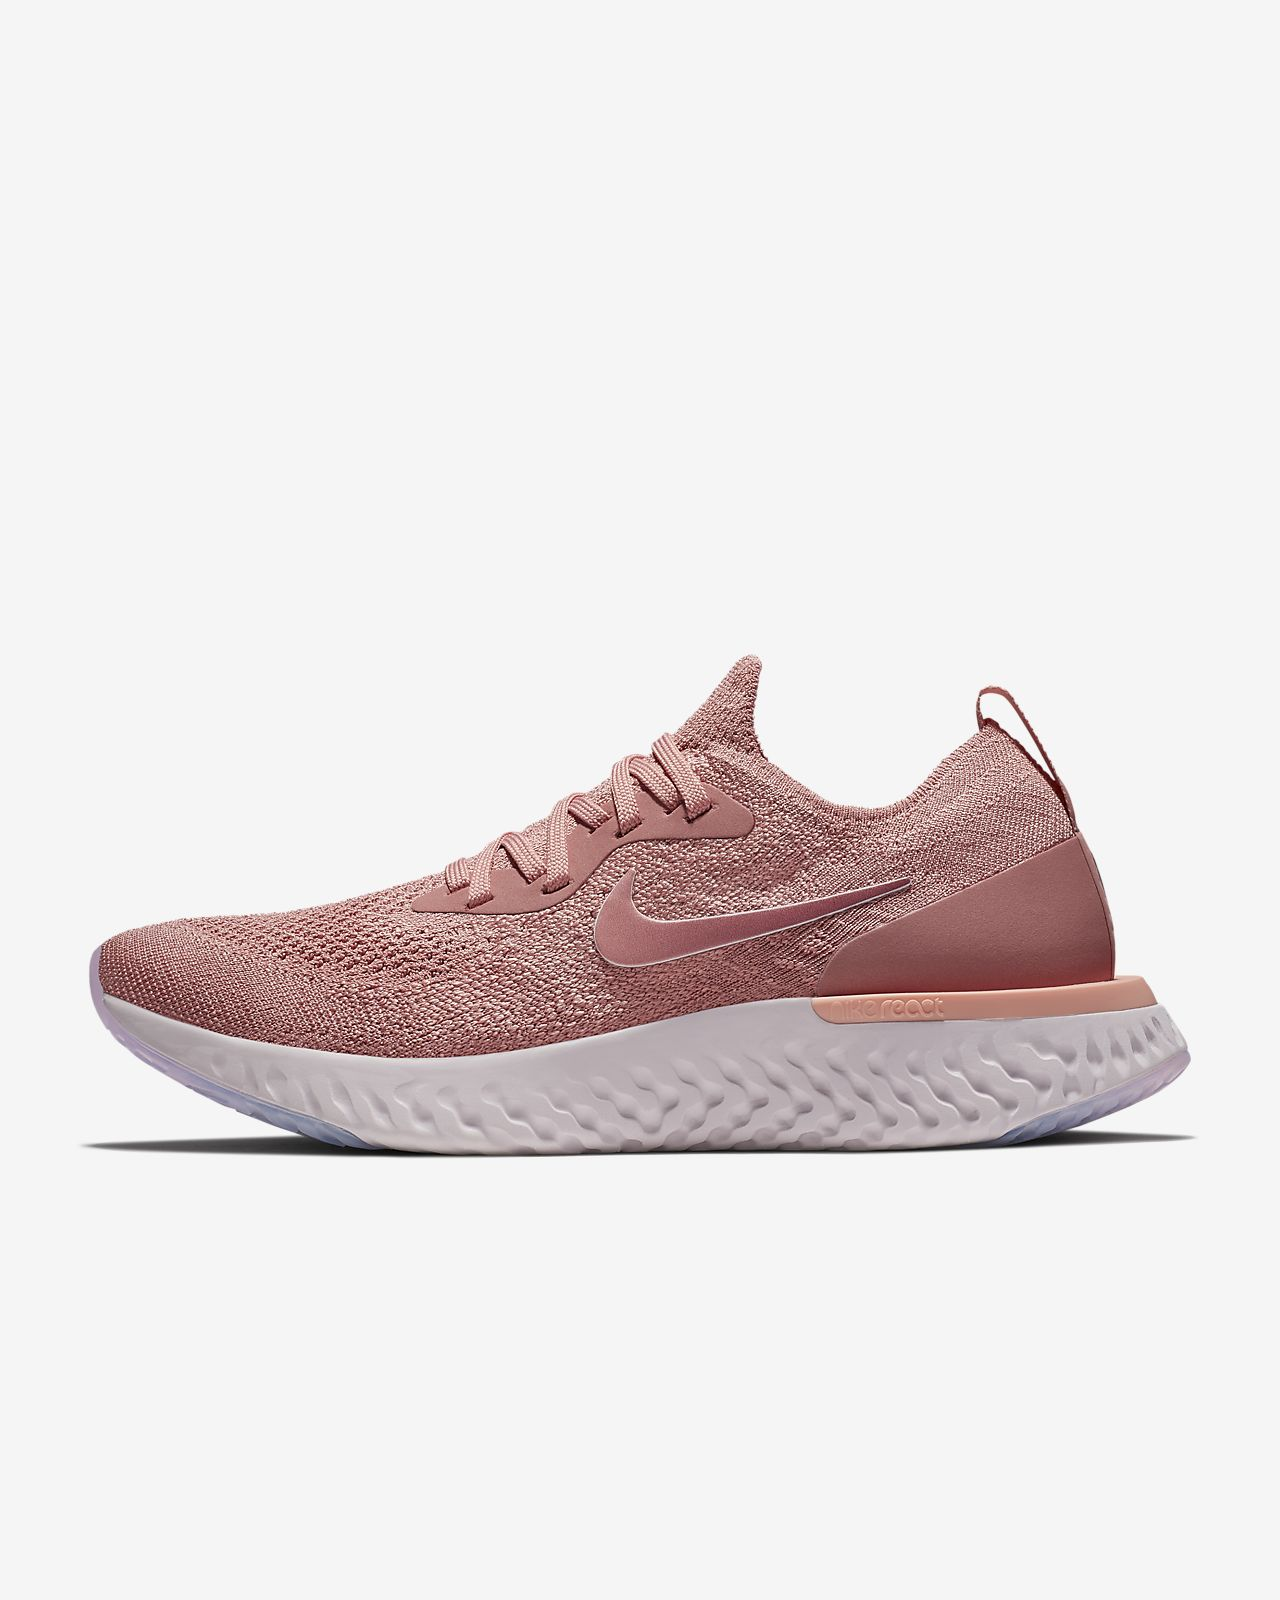 Nike Air VaporMax Flyknit is the World's # best Nike running shoe ( ratings + experts). See today's best deals from 50+ retailers - best price guaranteed!